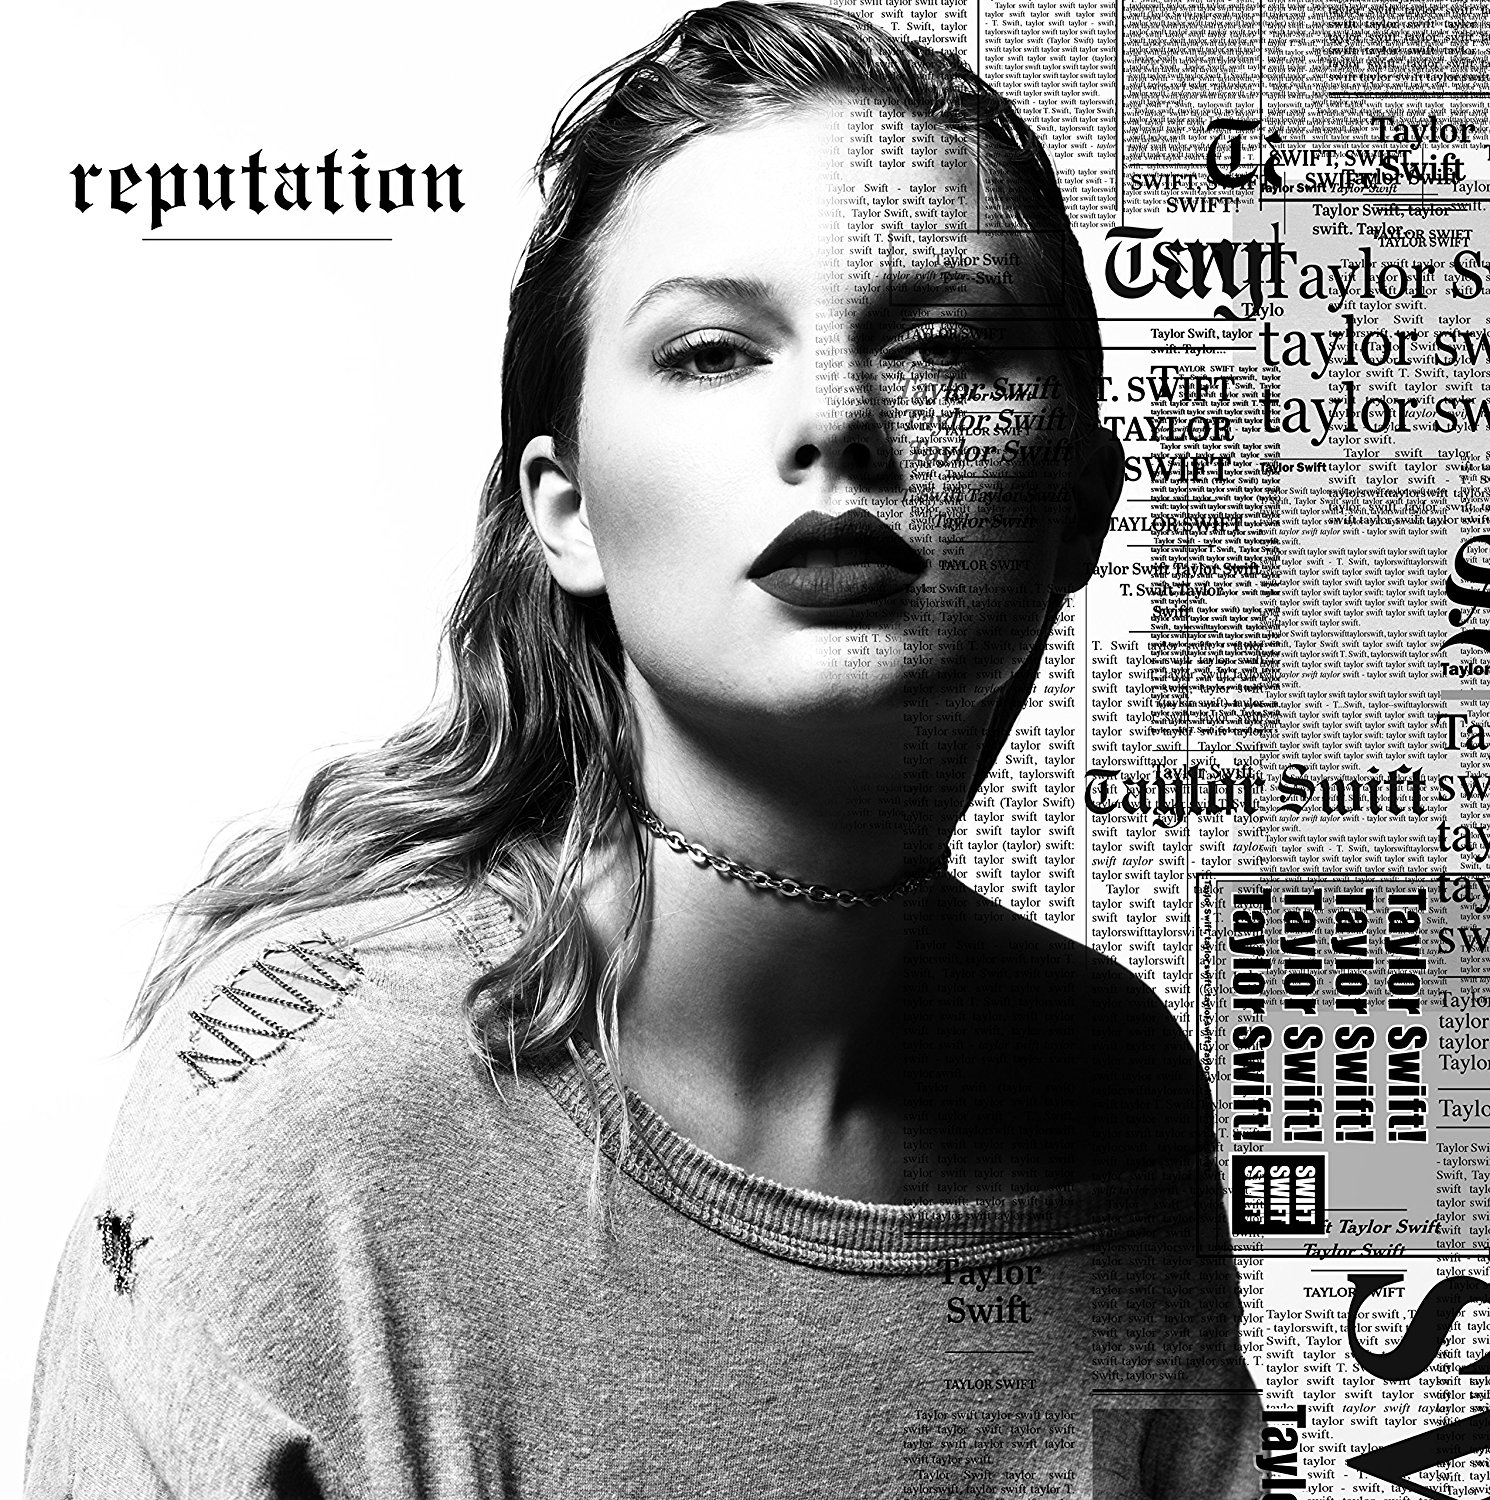 Taylor Swift's Reputation